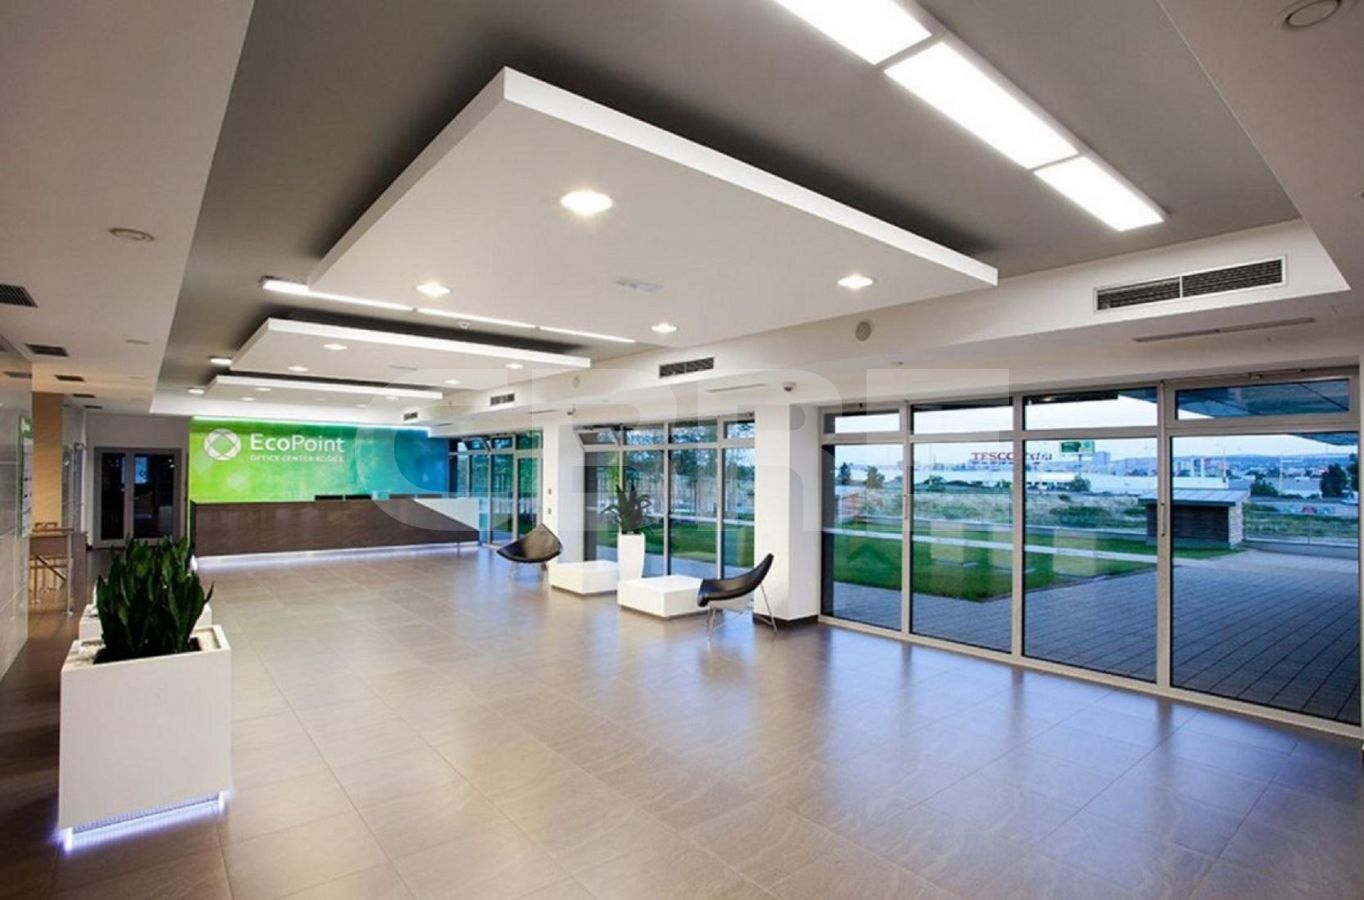 Ecopoint Office Center II, Kosice, Košice | Offices for rent by CBRE | 3